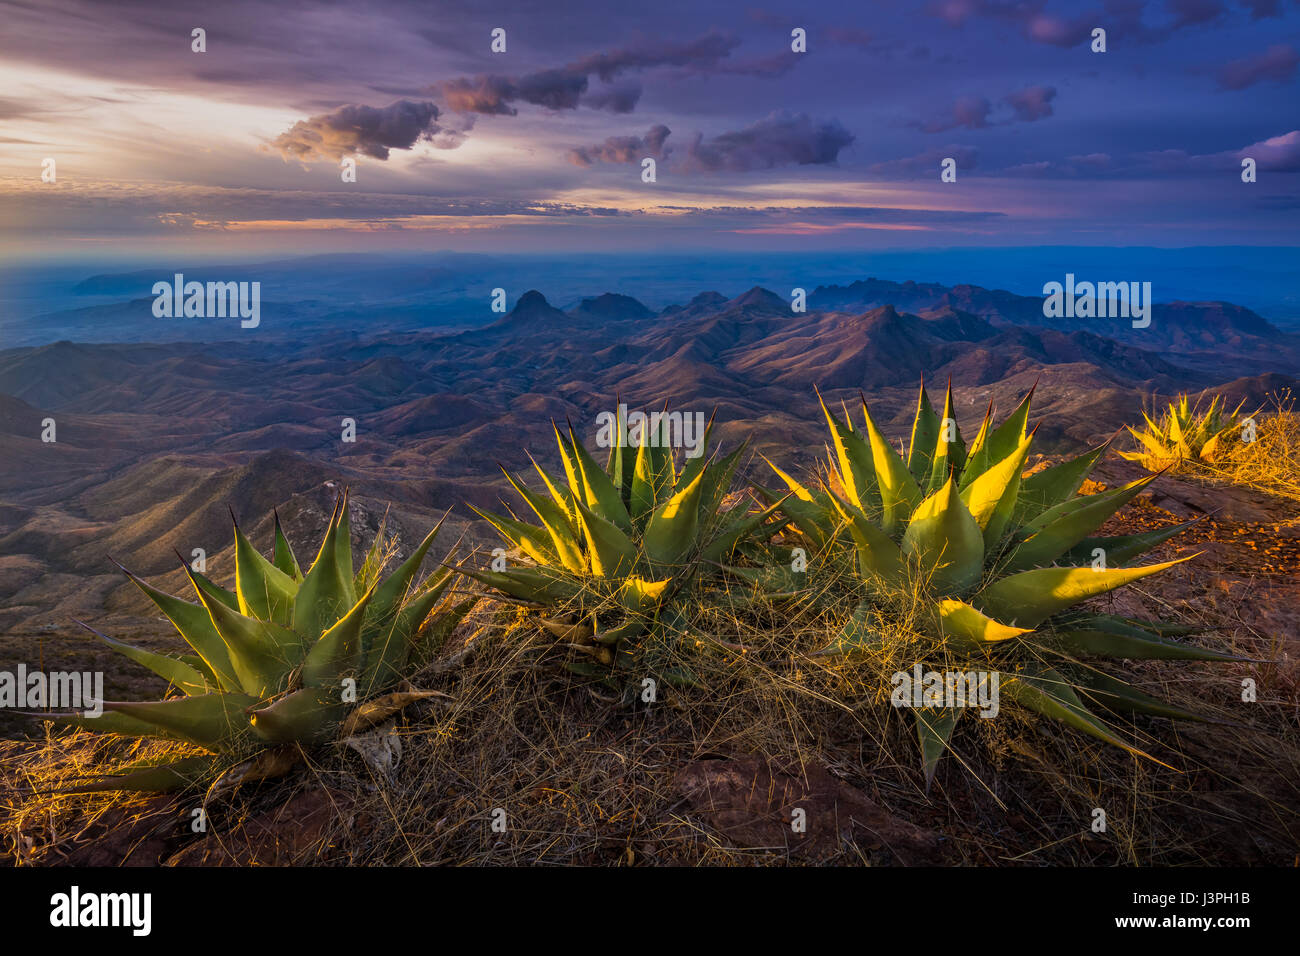 Big Bend National Park in Texas has national significance as the largest protected area of Chihuahuan Desert topography - Stock Image